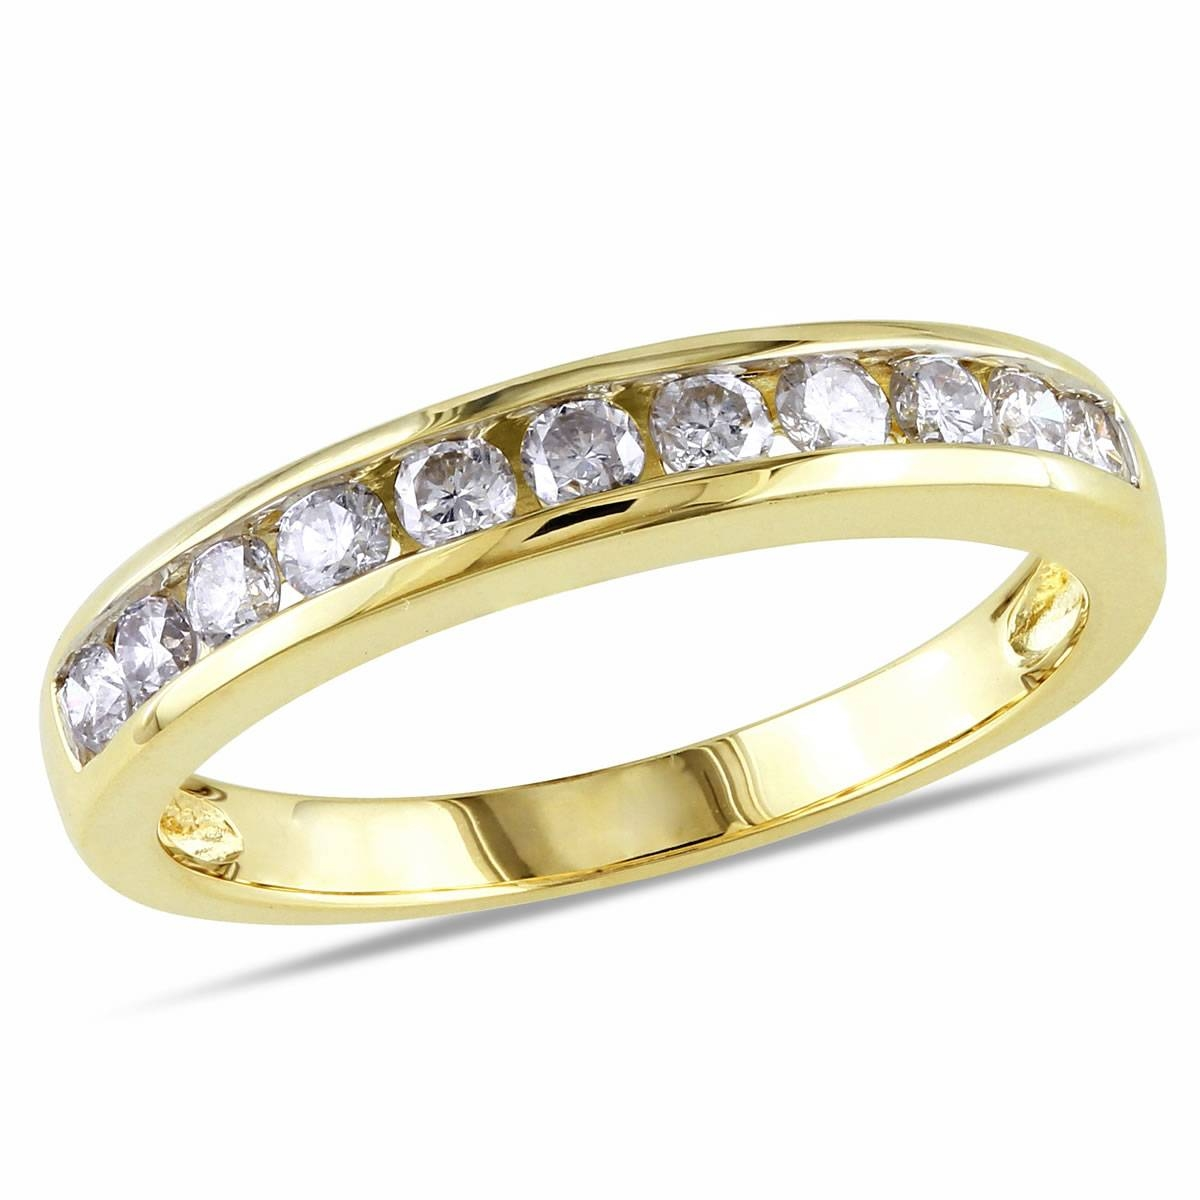 10K Yellow Gold 1/2 Ct Diamond Tw Eternity Anniversary Ring, Gh I2 Throughout Newest Yellow Gold Anniversary Rings (View 1 of 25)